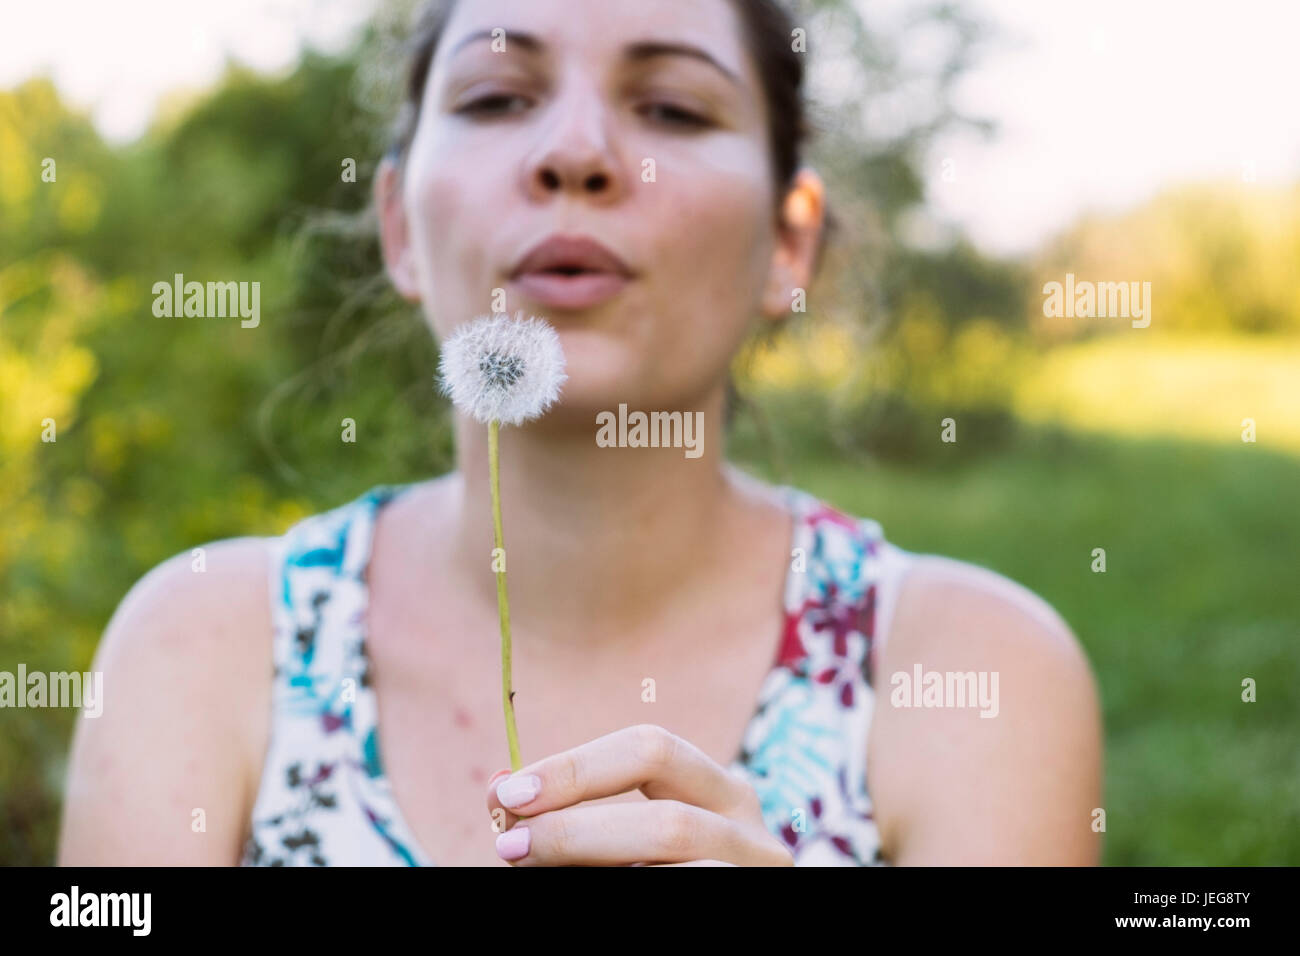 Woman blowing dandelion - Stock Image